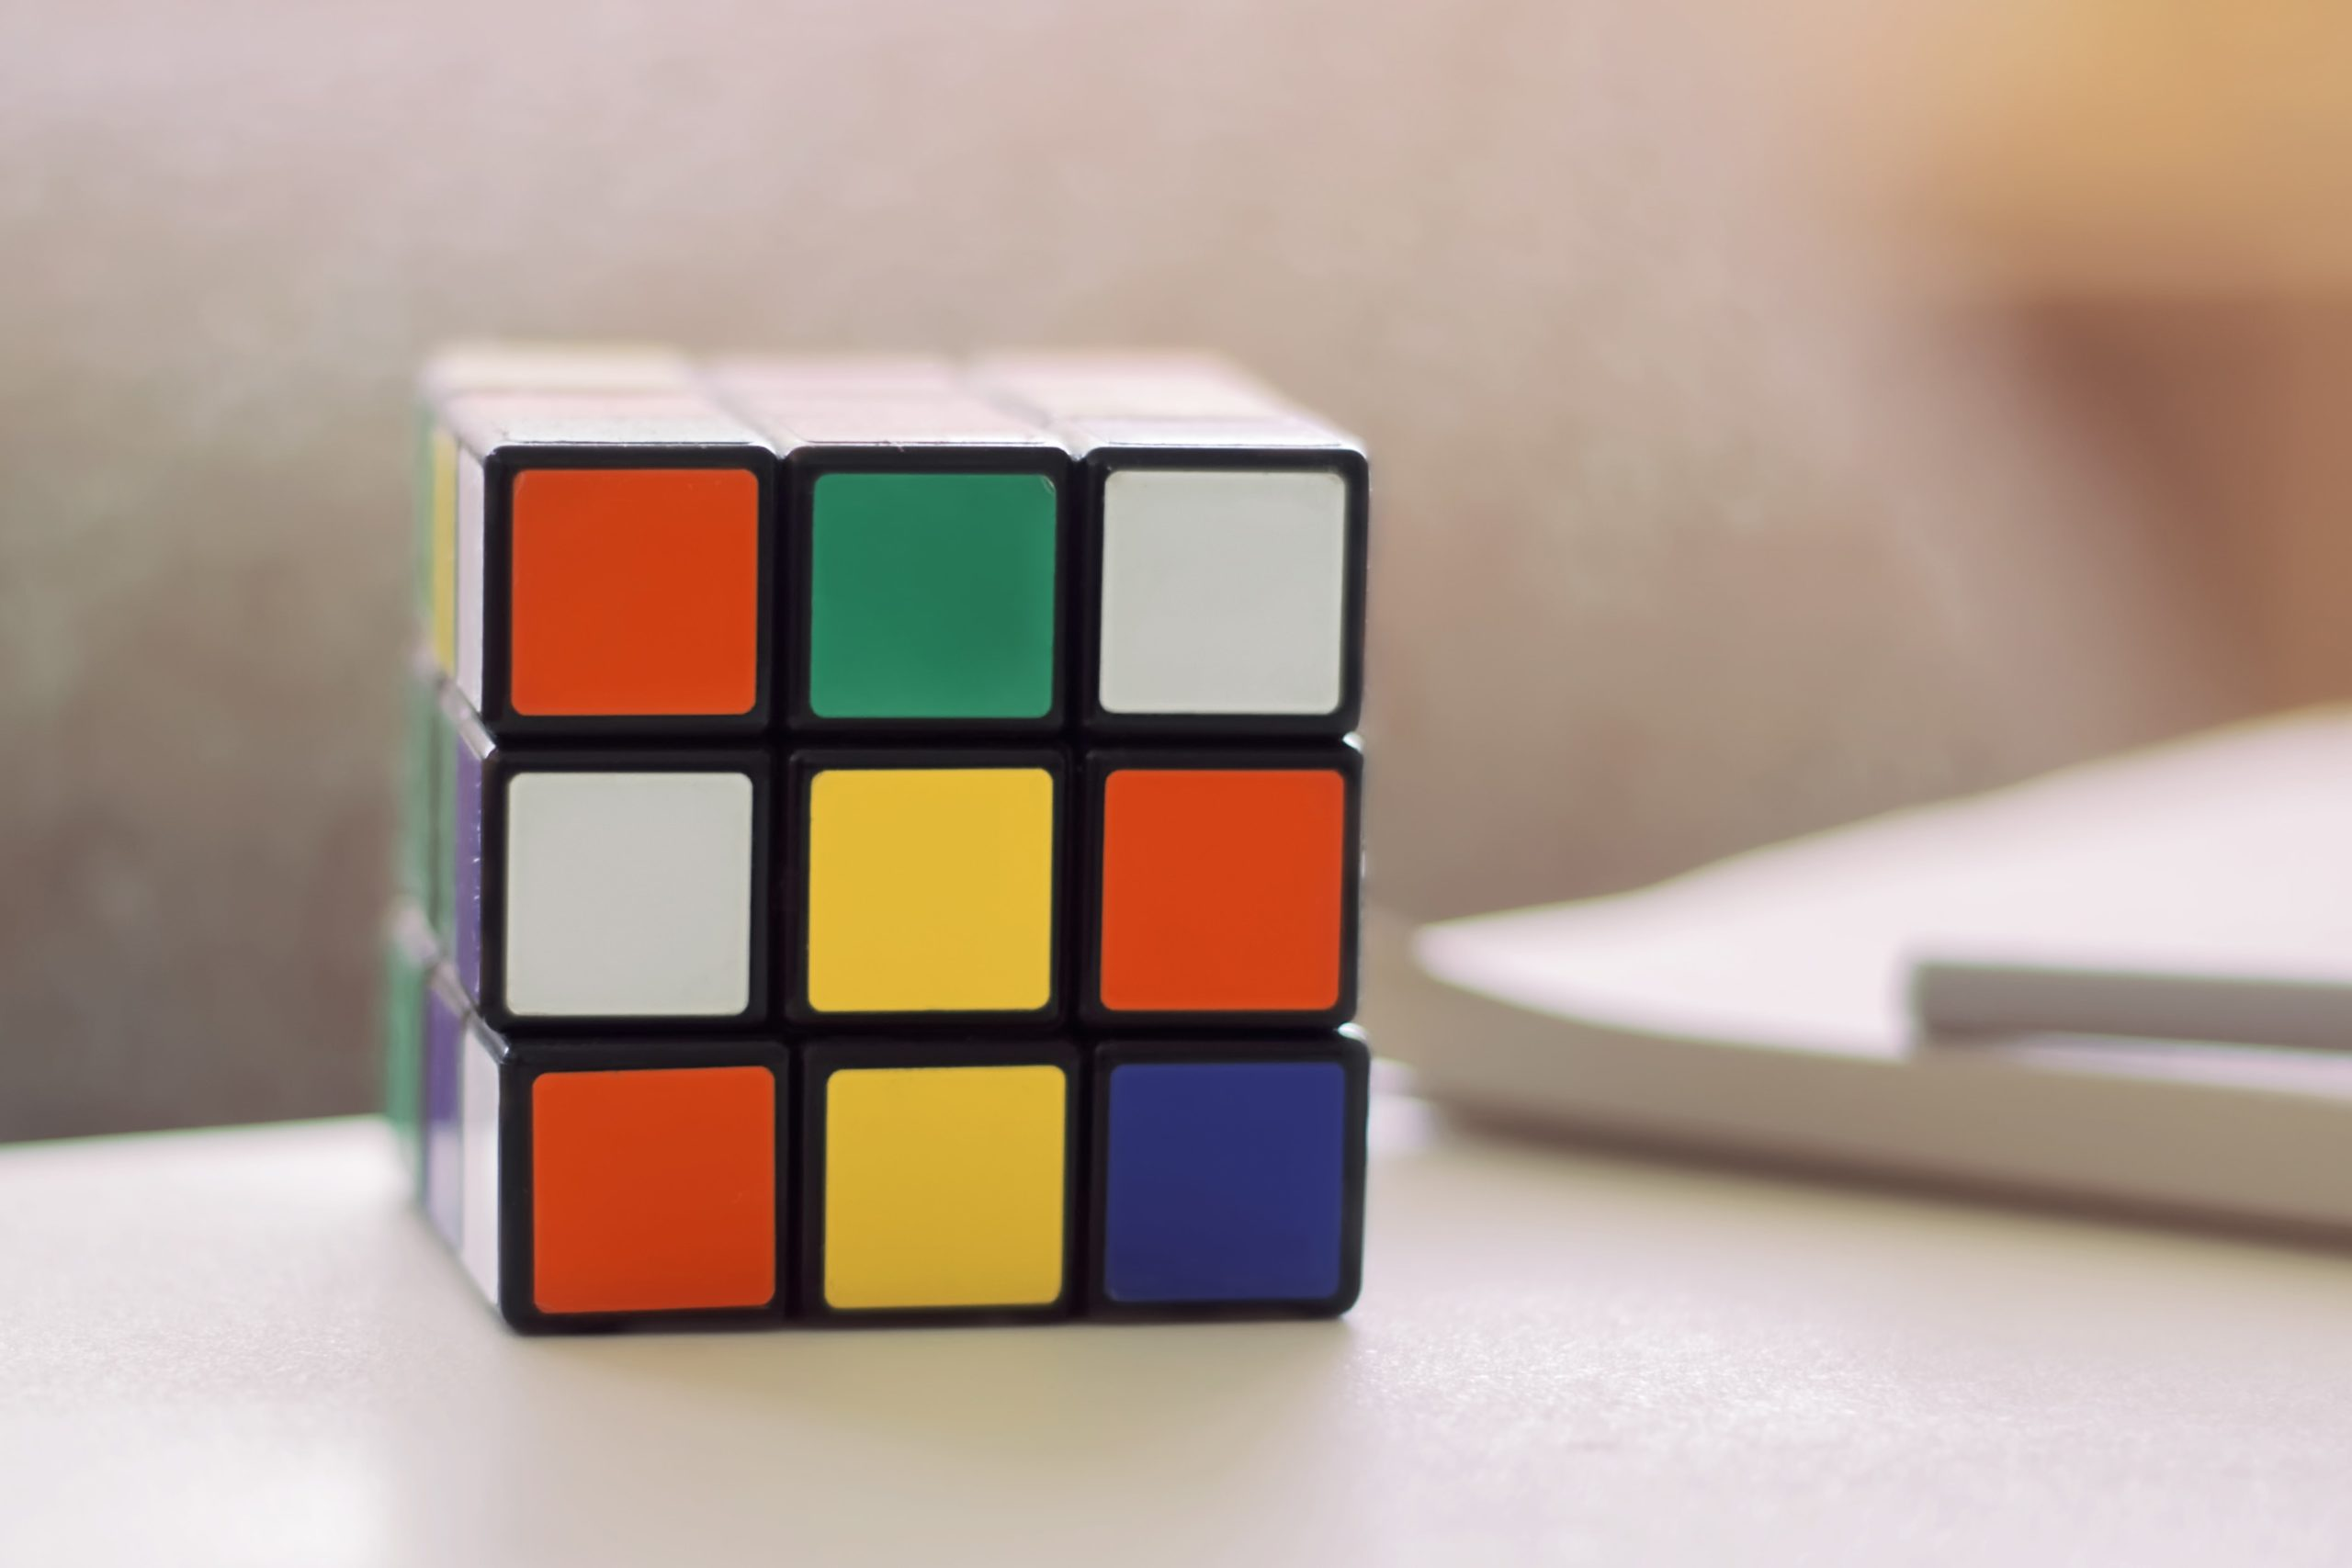 A Rubik's Cube as a symbol of an unsolved problem